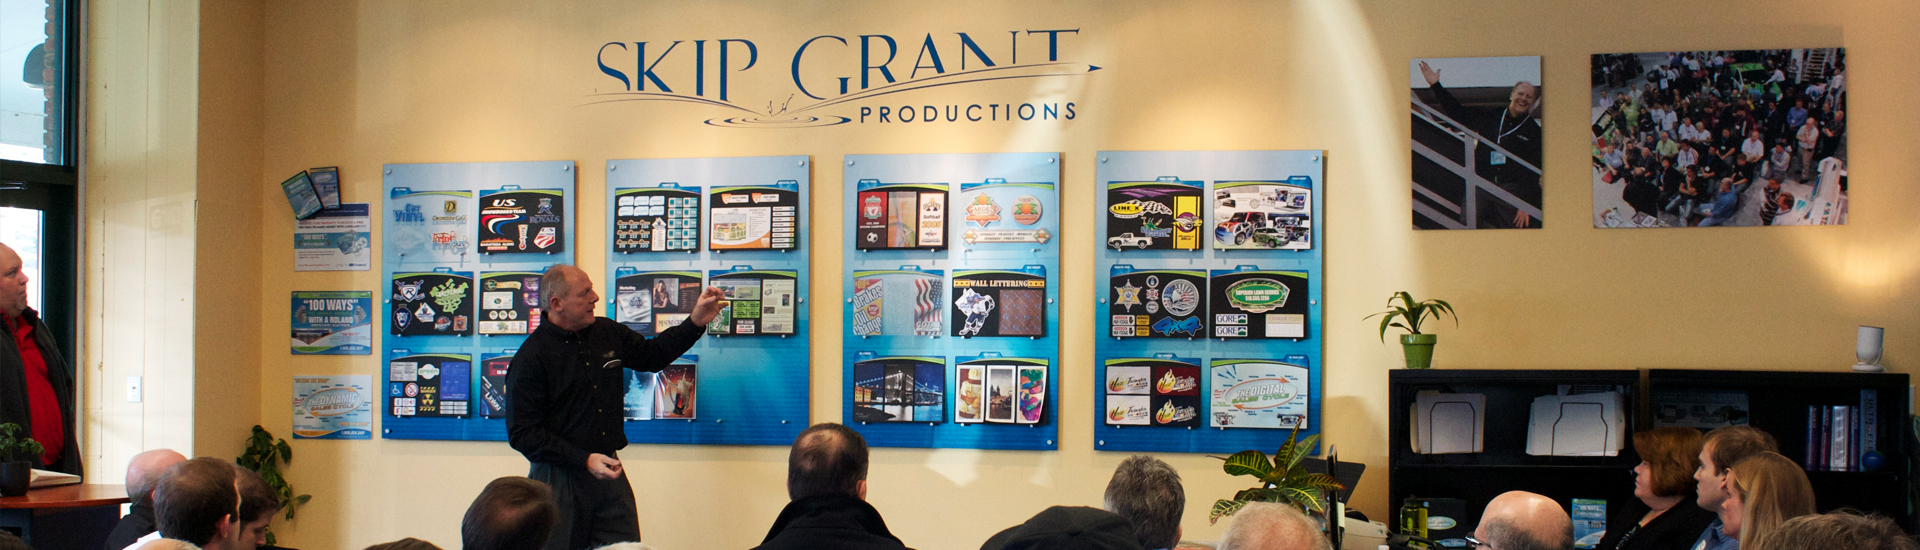 Skip Grant Productions | Mimaki | Roland | 100 ways